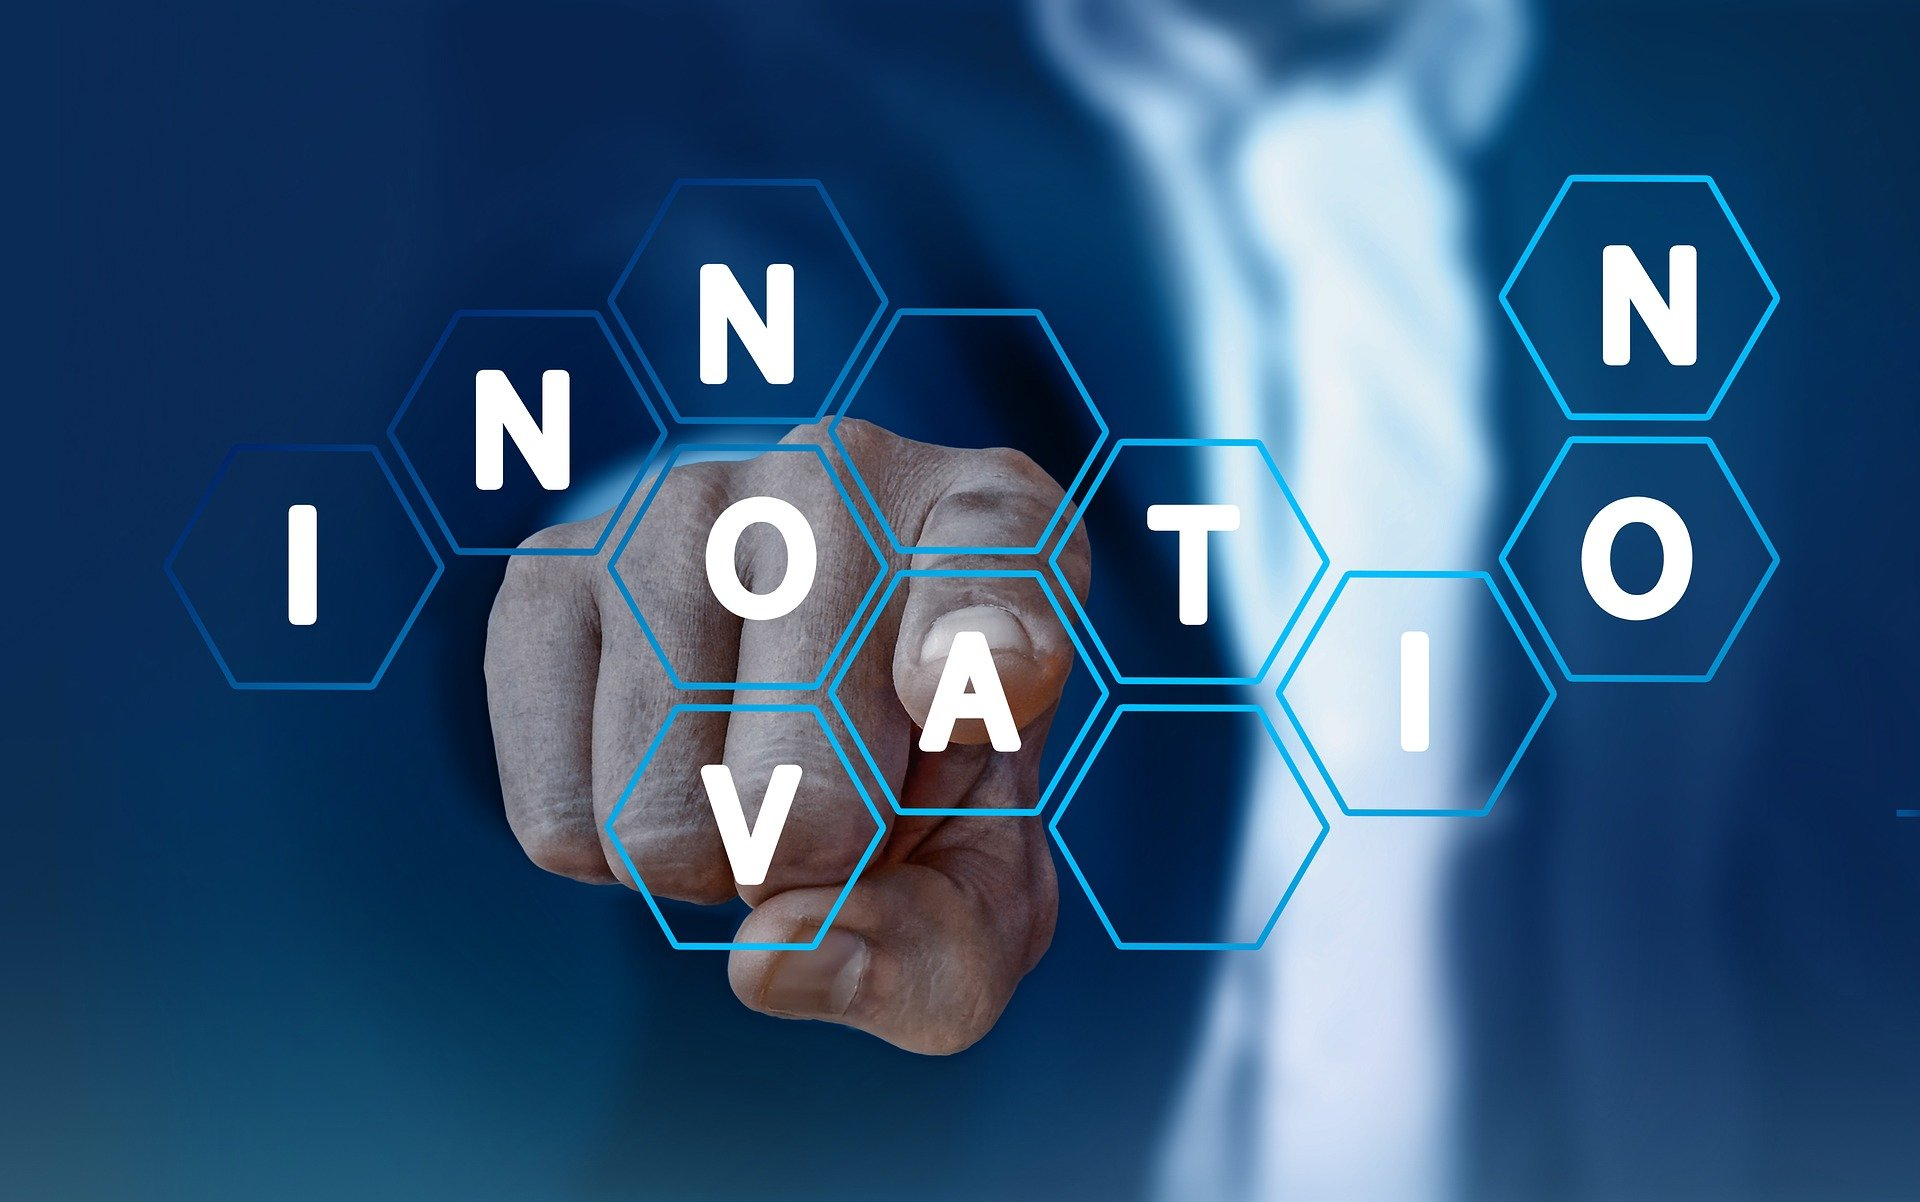 Helping innovation to thrive